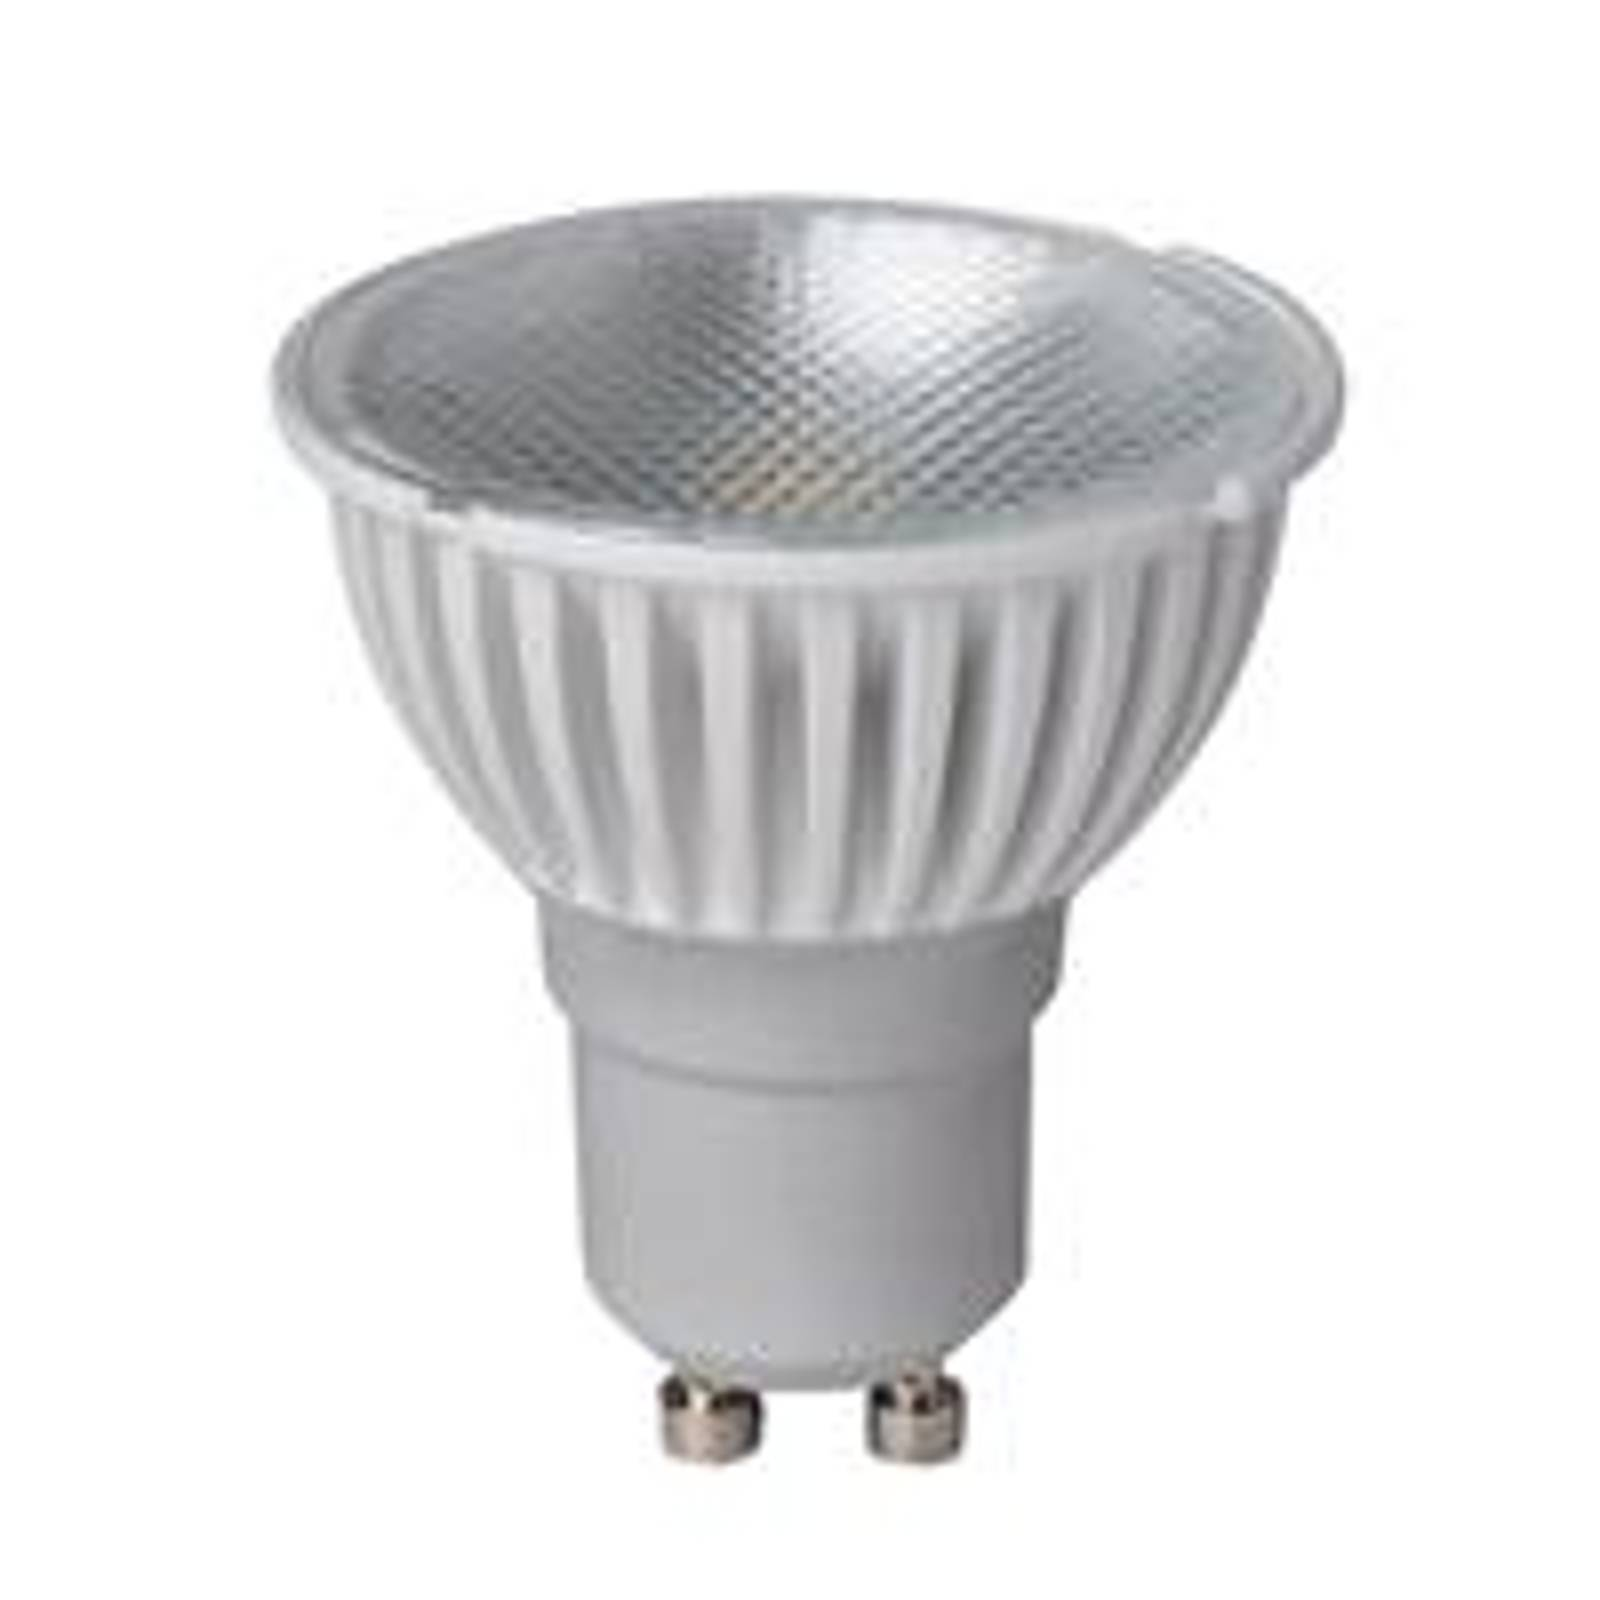 GU10 5.5 W PAR16 828 LED reflector bulb 35° from Megaman